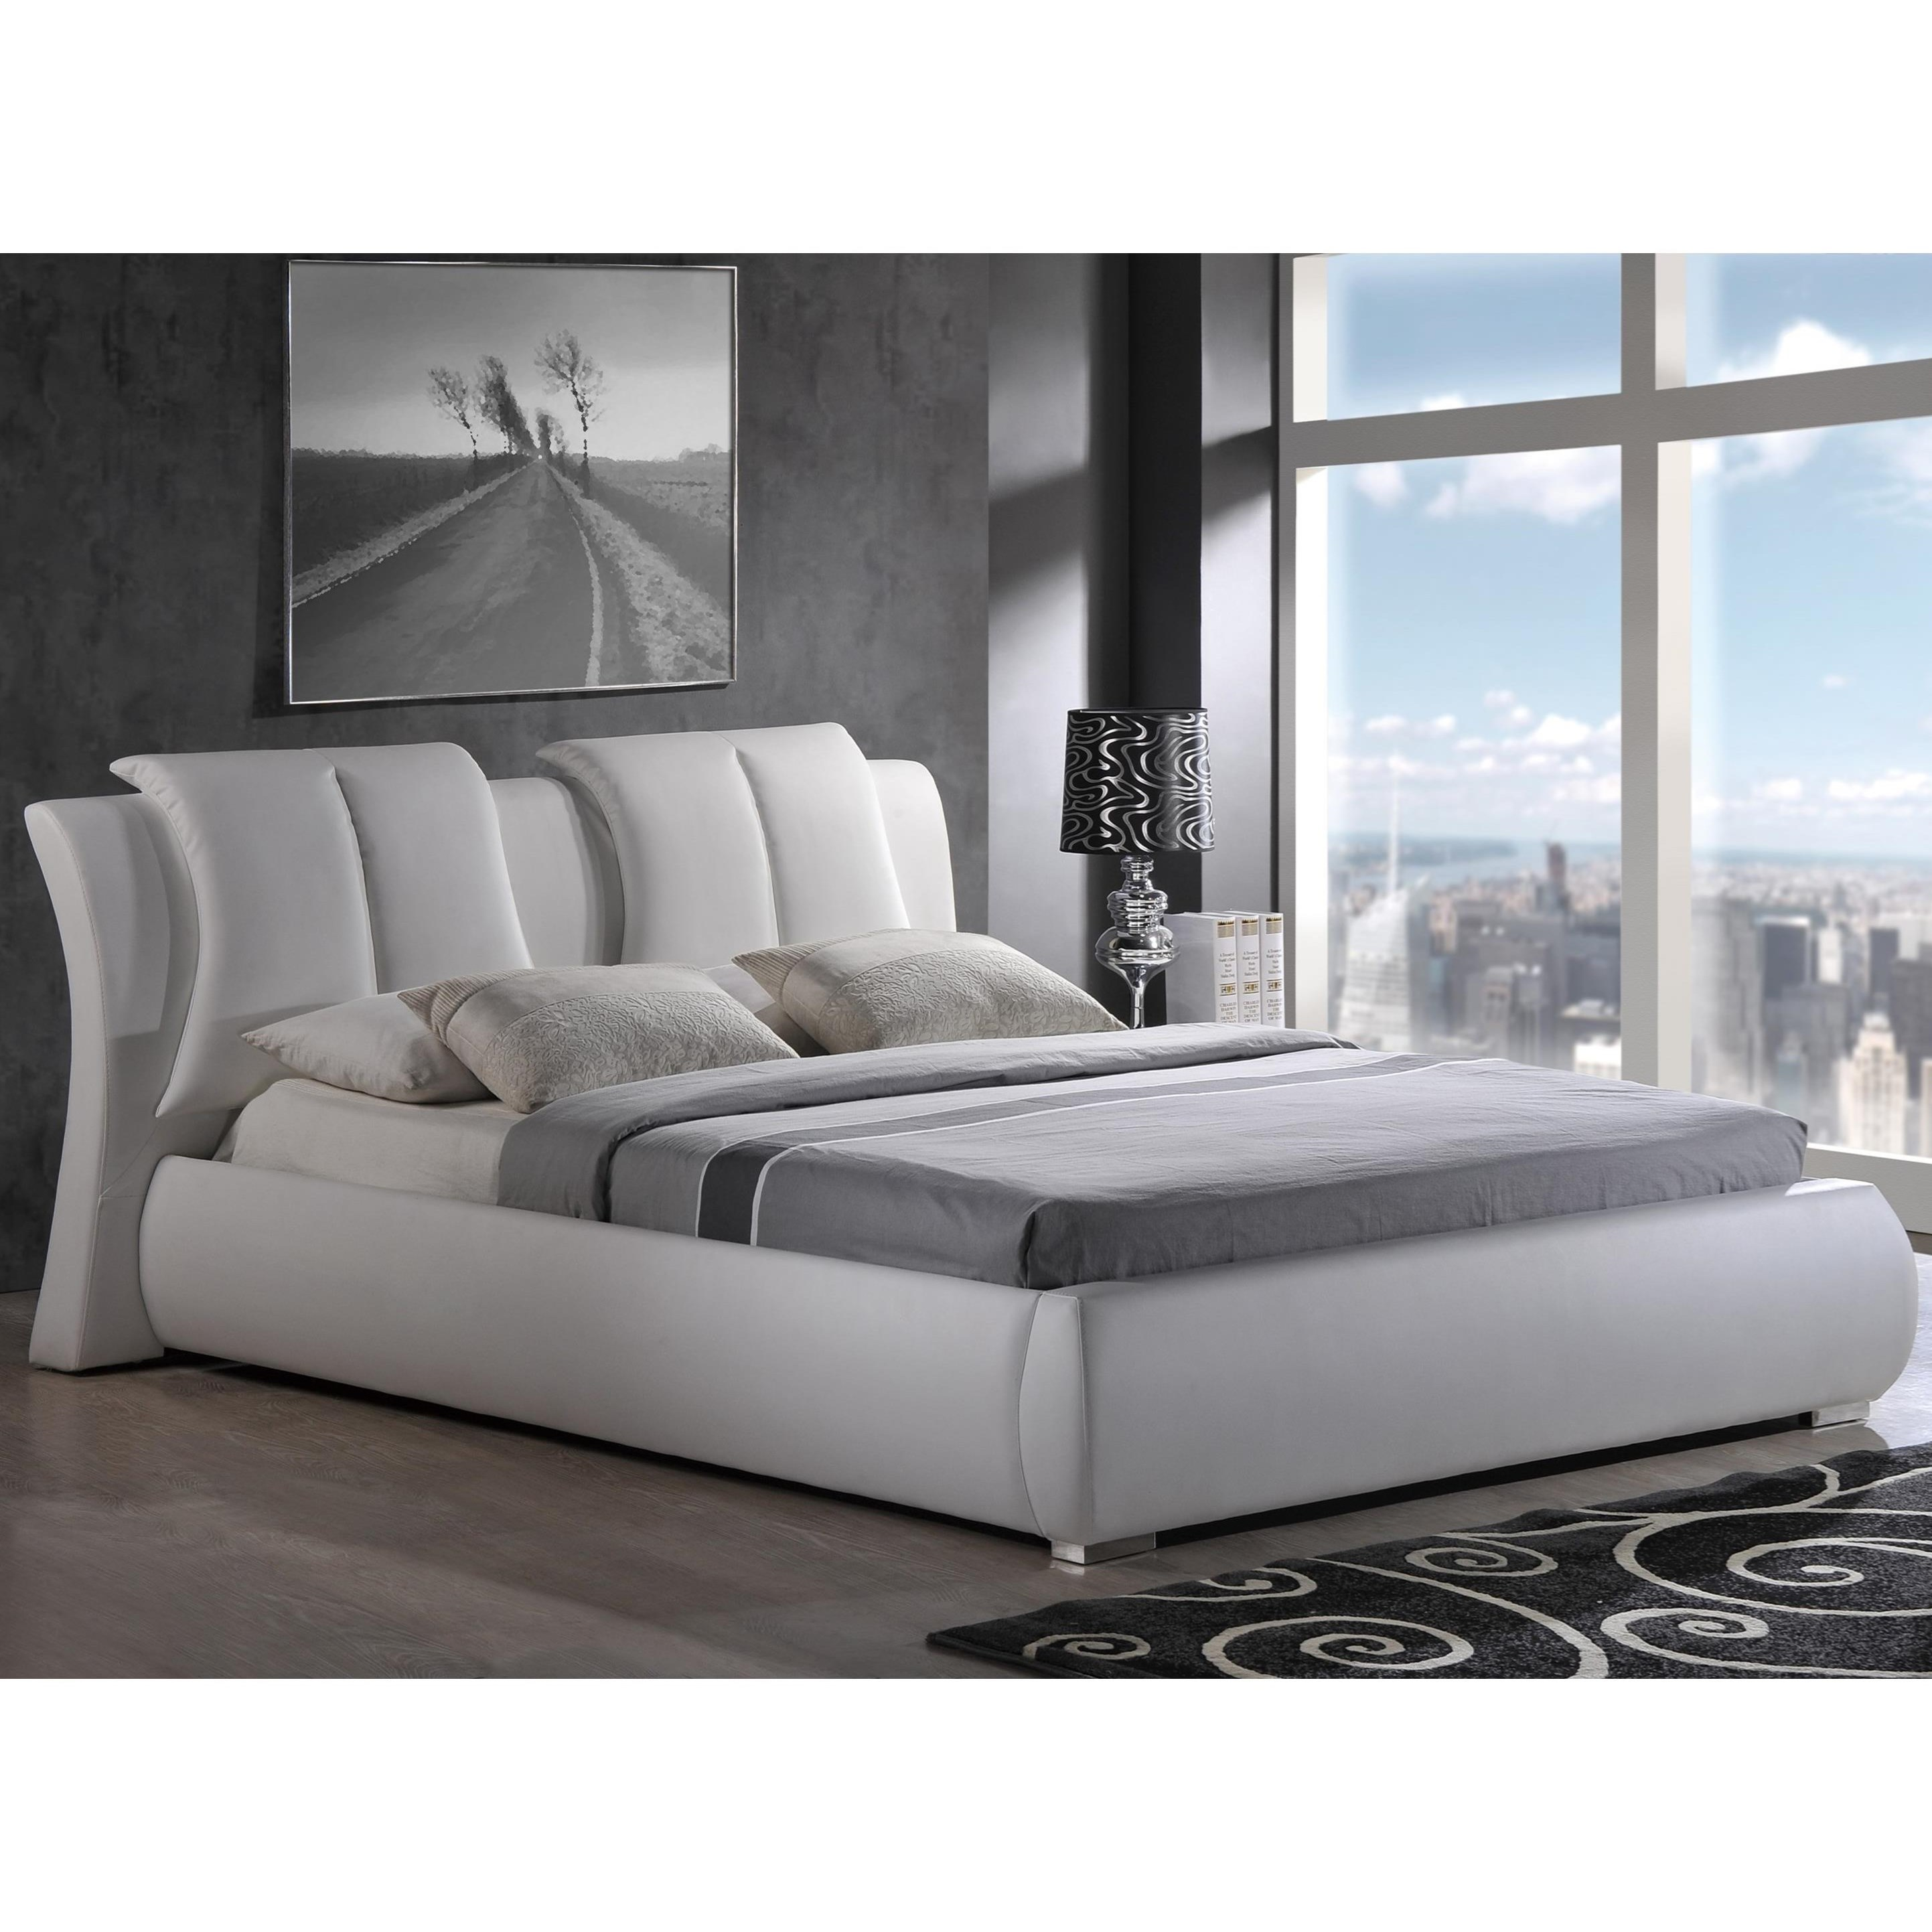 Padded King Bed